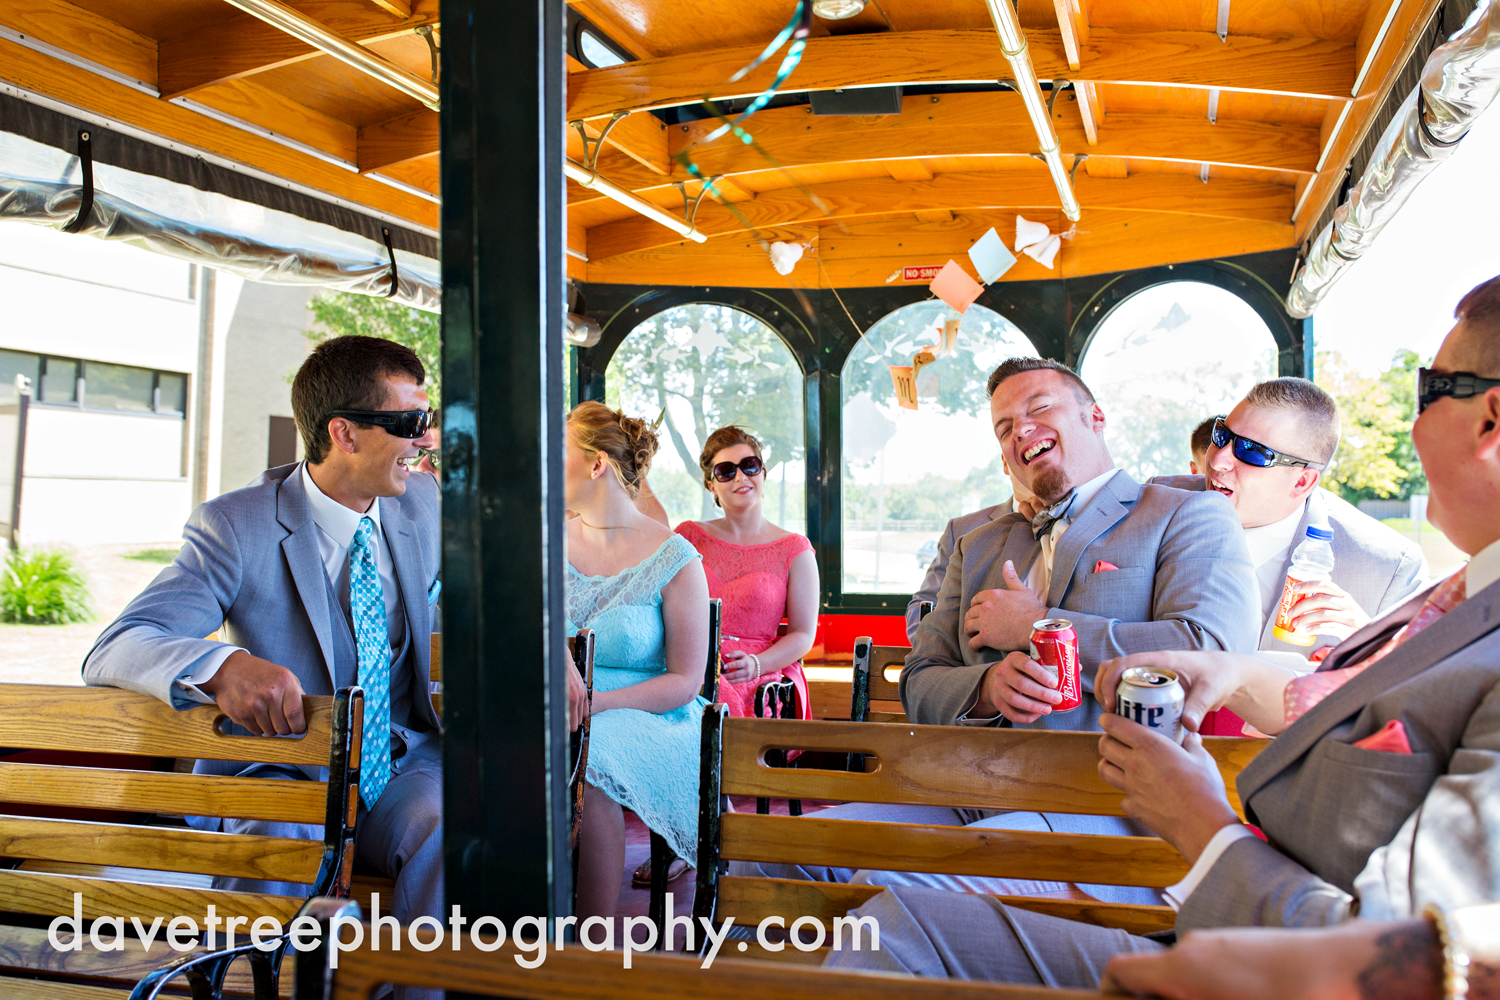 veranda_wedding_photographer_st_joseph_wedding_109.jpg